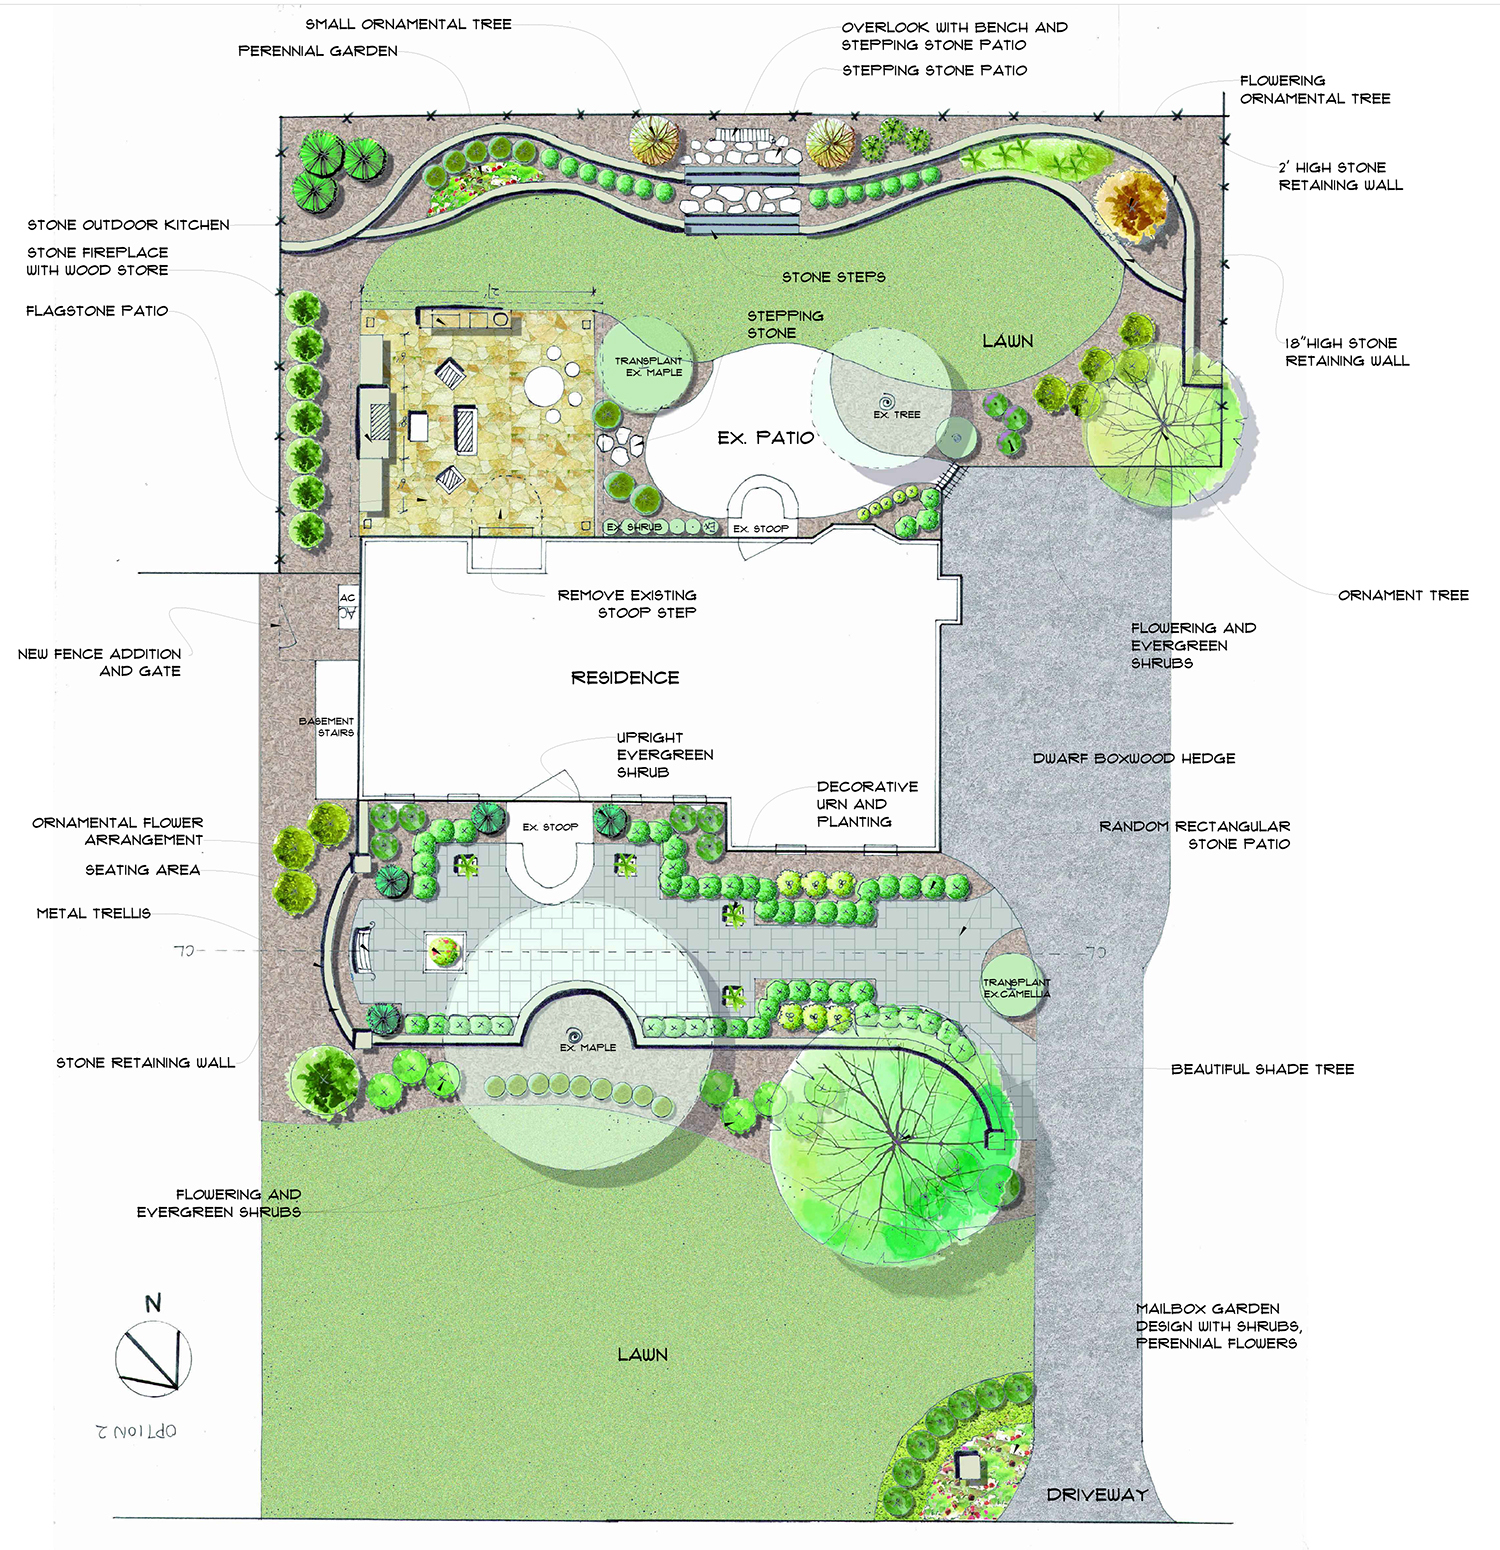 Landscape Design Services - Landscape design plans